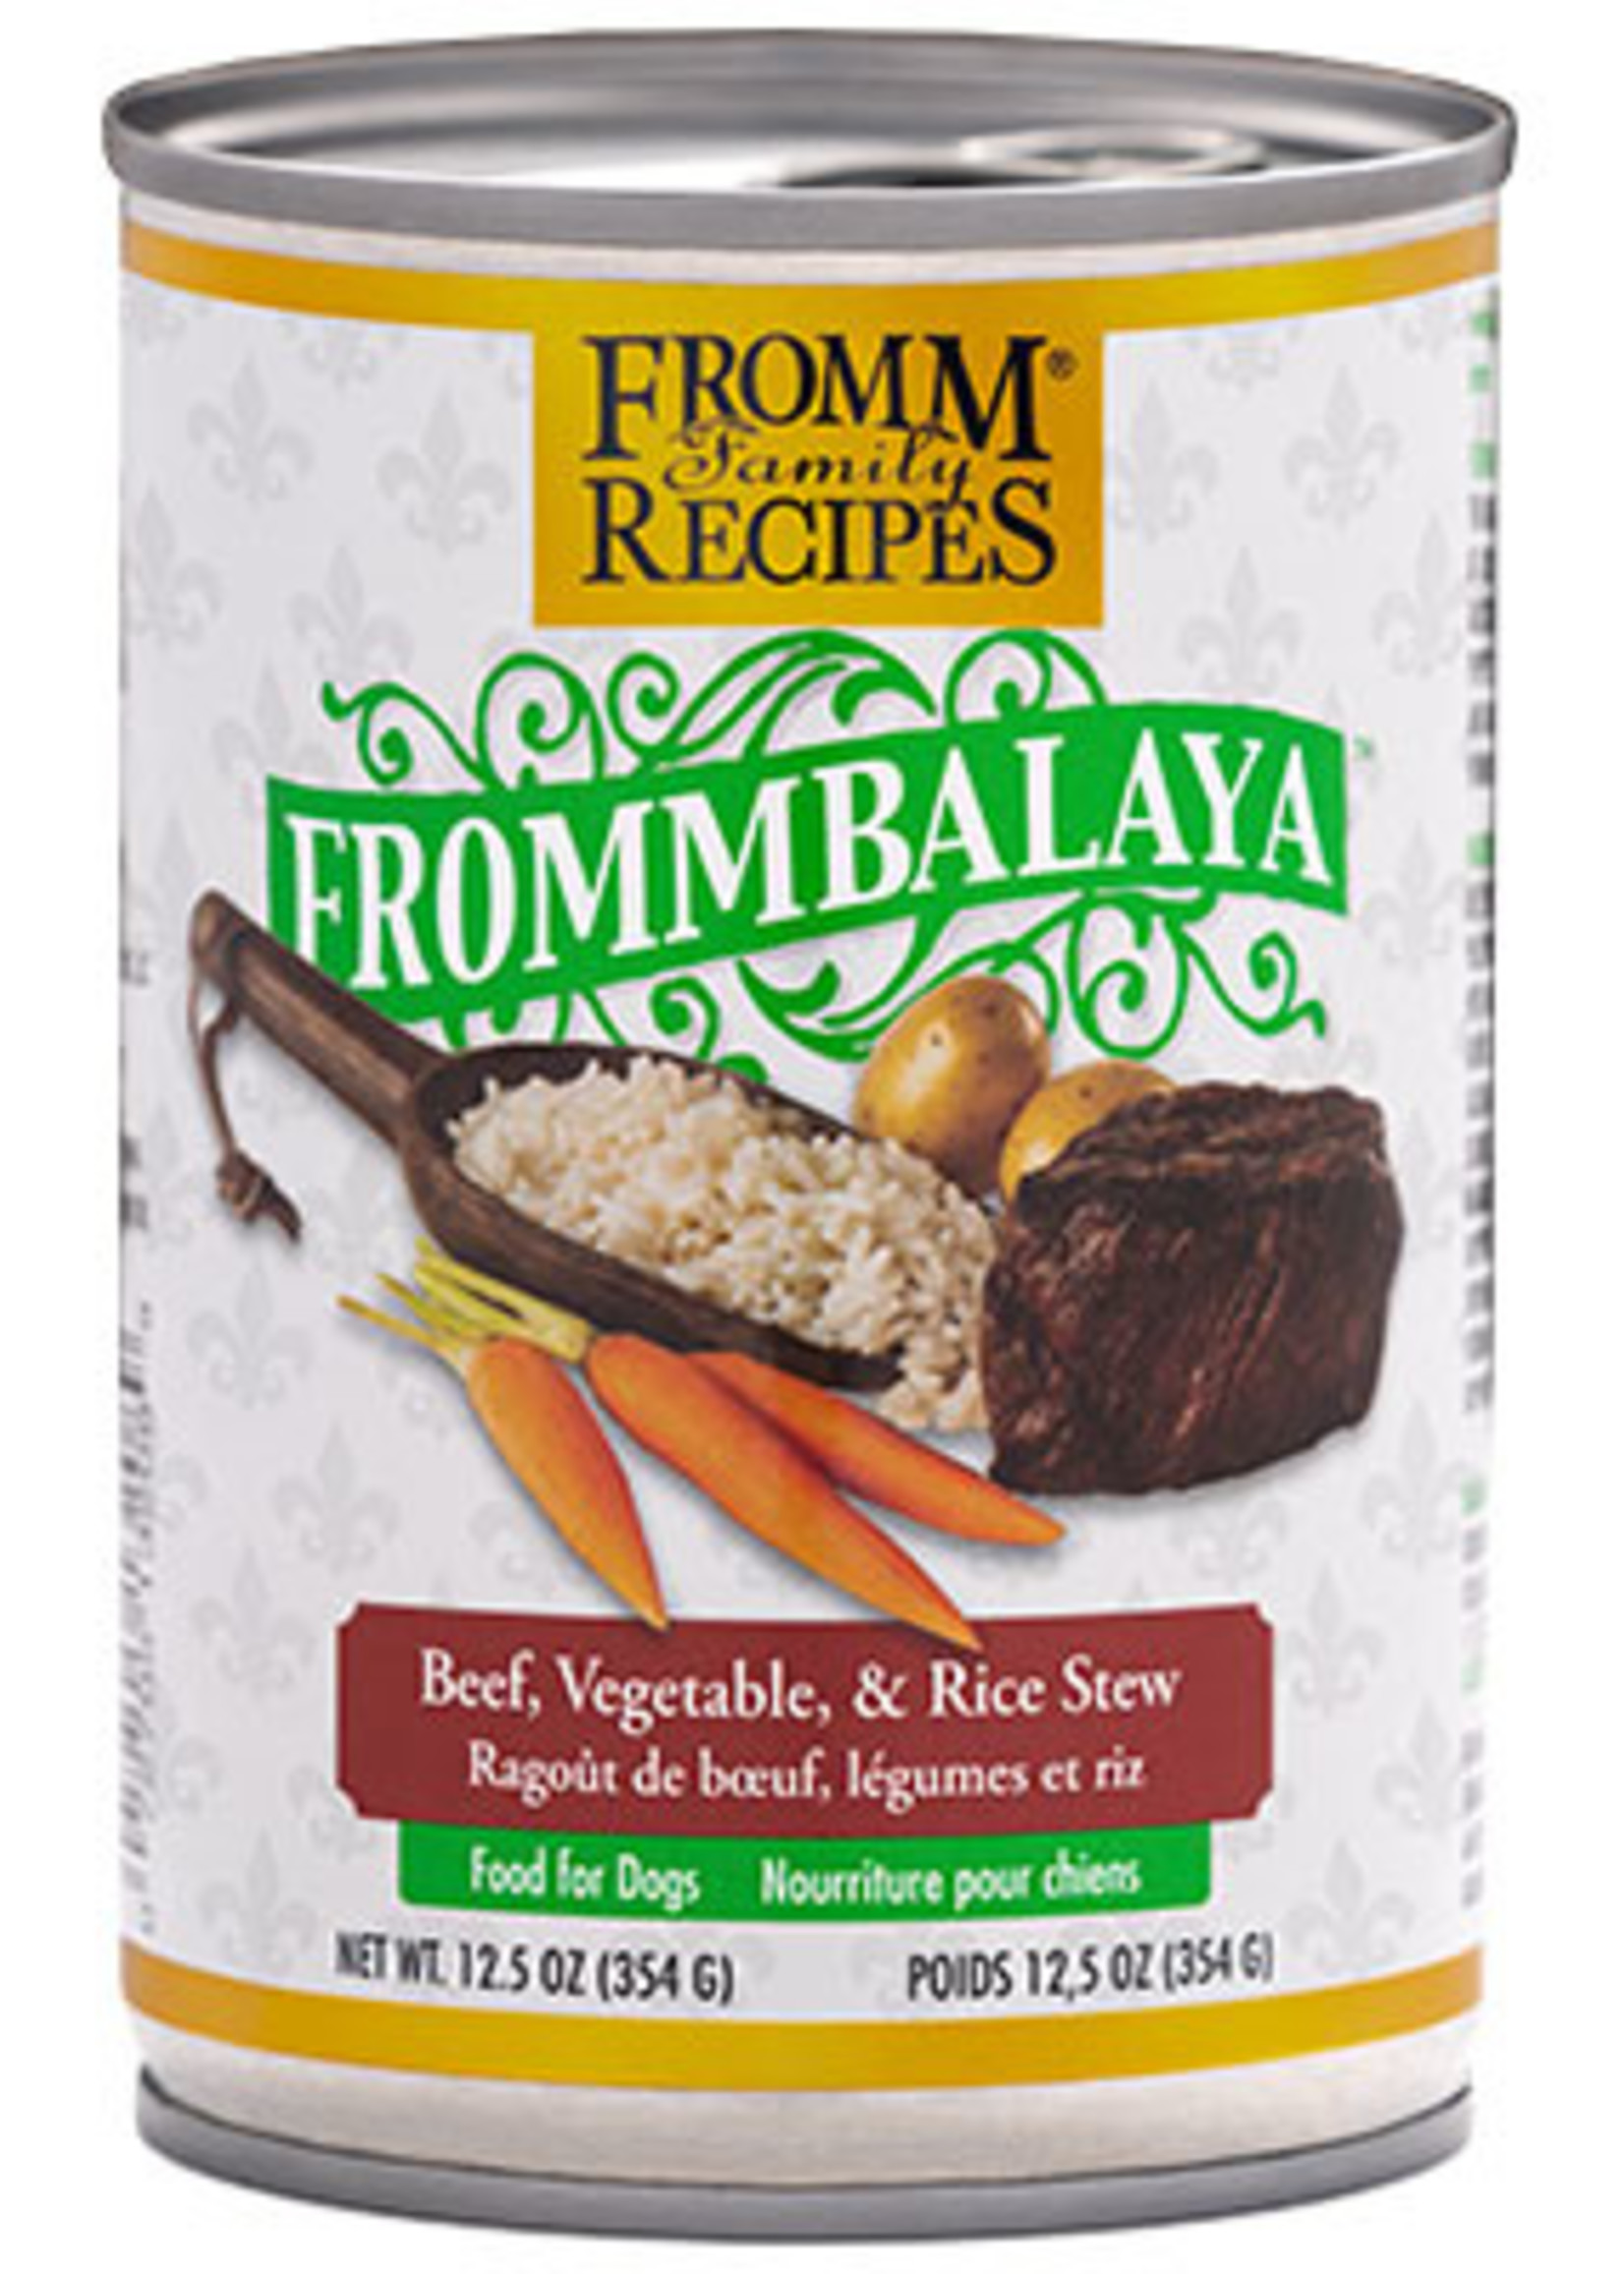 Fromm FrommBALAYA Beef, Vegetable, & Rice Stew 12.5oz